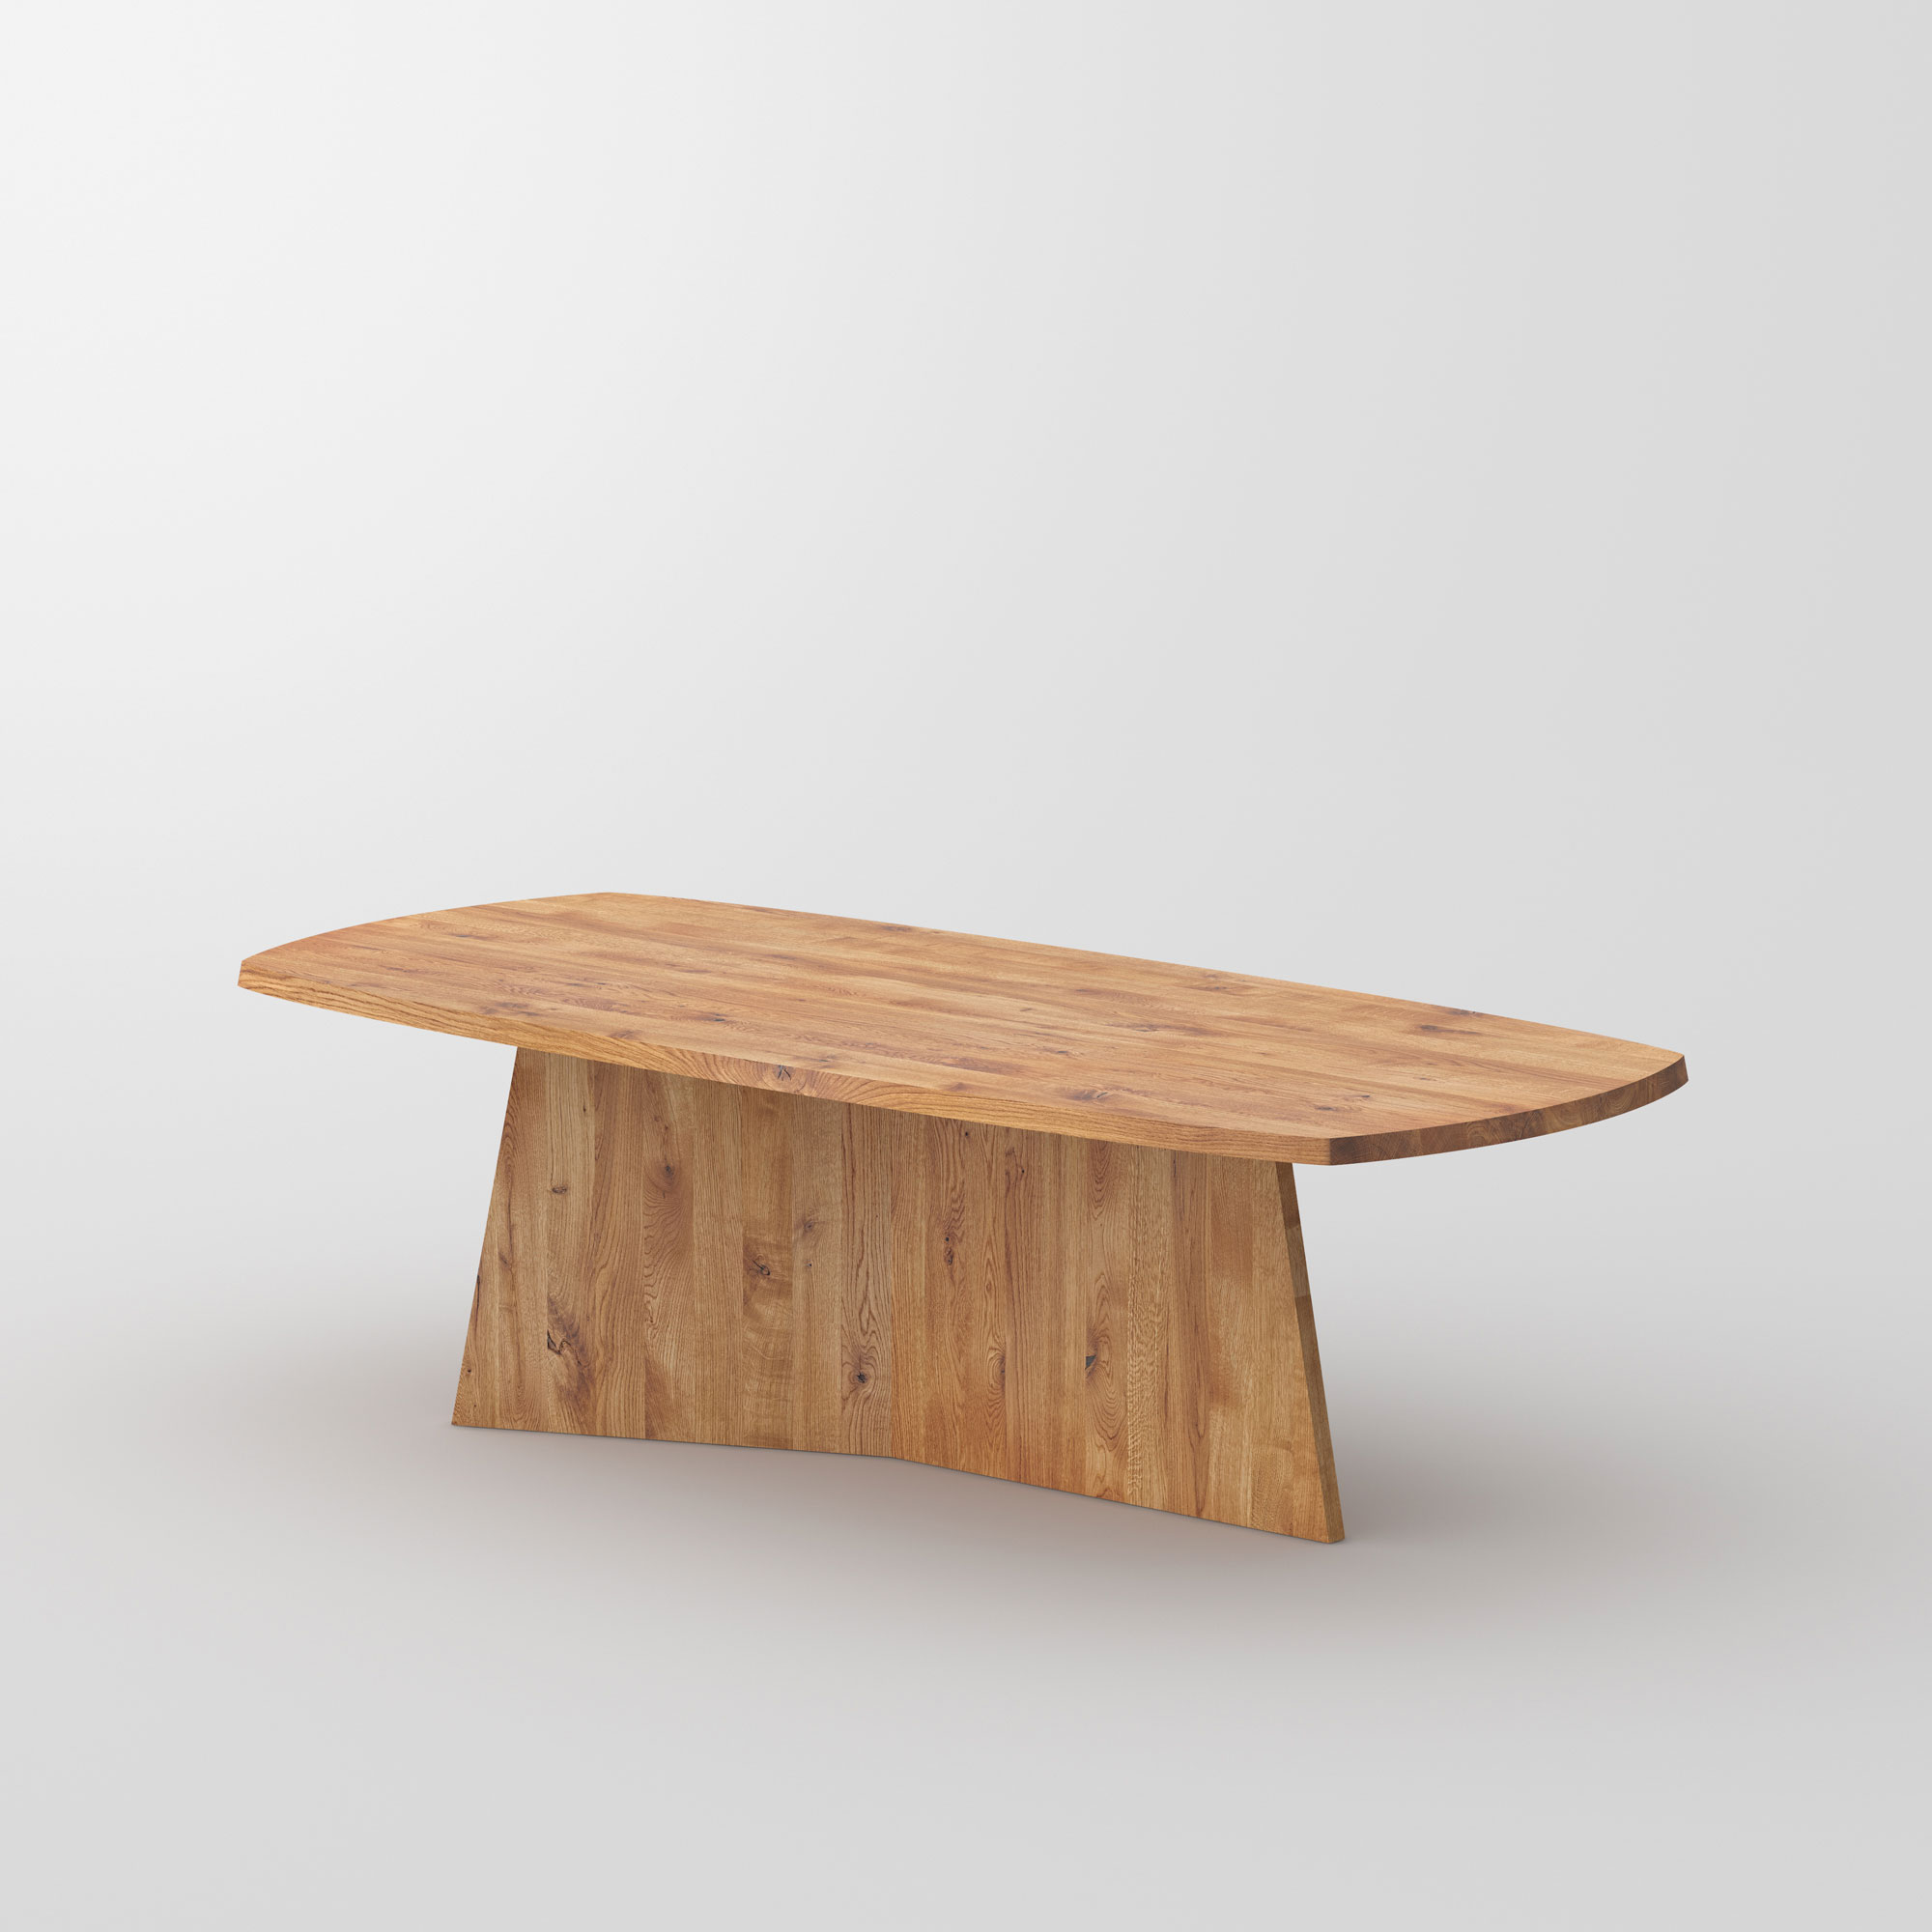 Design Dining Table LOTUS cam2 custom made in solid wood by vitamin design